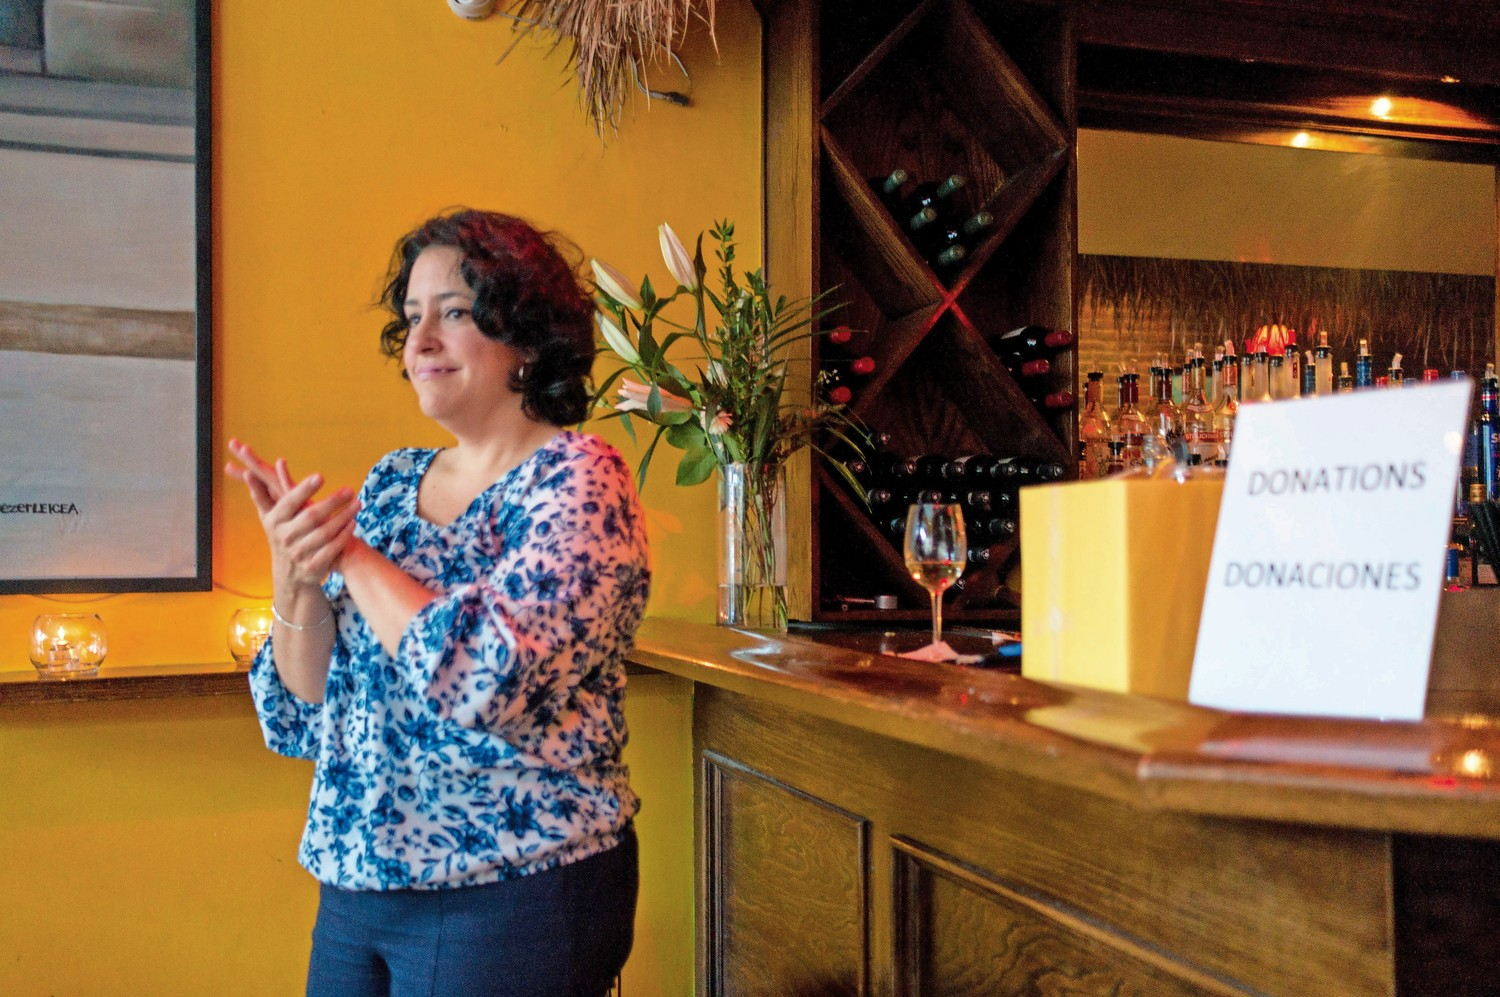 Teresita Levy, a professor of Latin American studies at Lehman College, claps along to the music of Trio La Cumbancha at Amor Cubano, a Cuban restaurant in Harlem. Levy held a fundraiser at the restaurant for a weeklong trip she and her students are planning as part of their coursework.